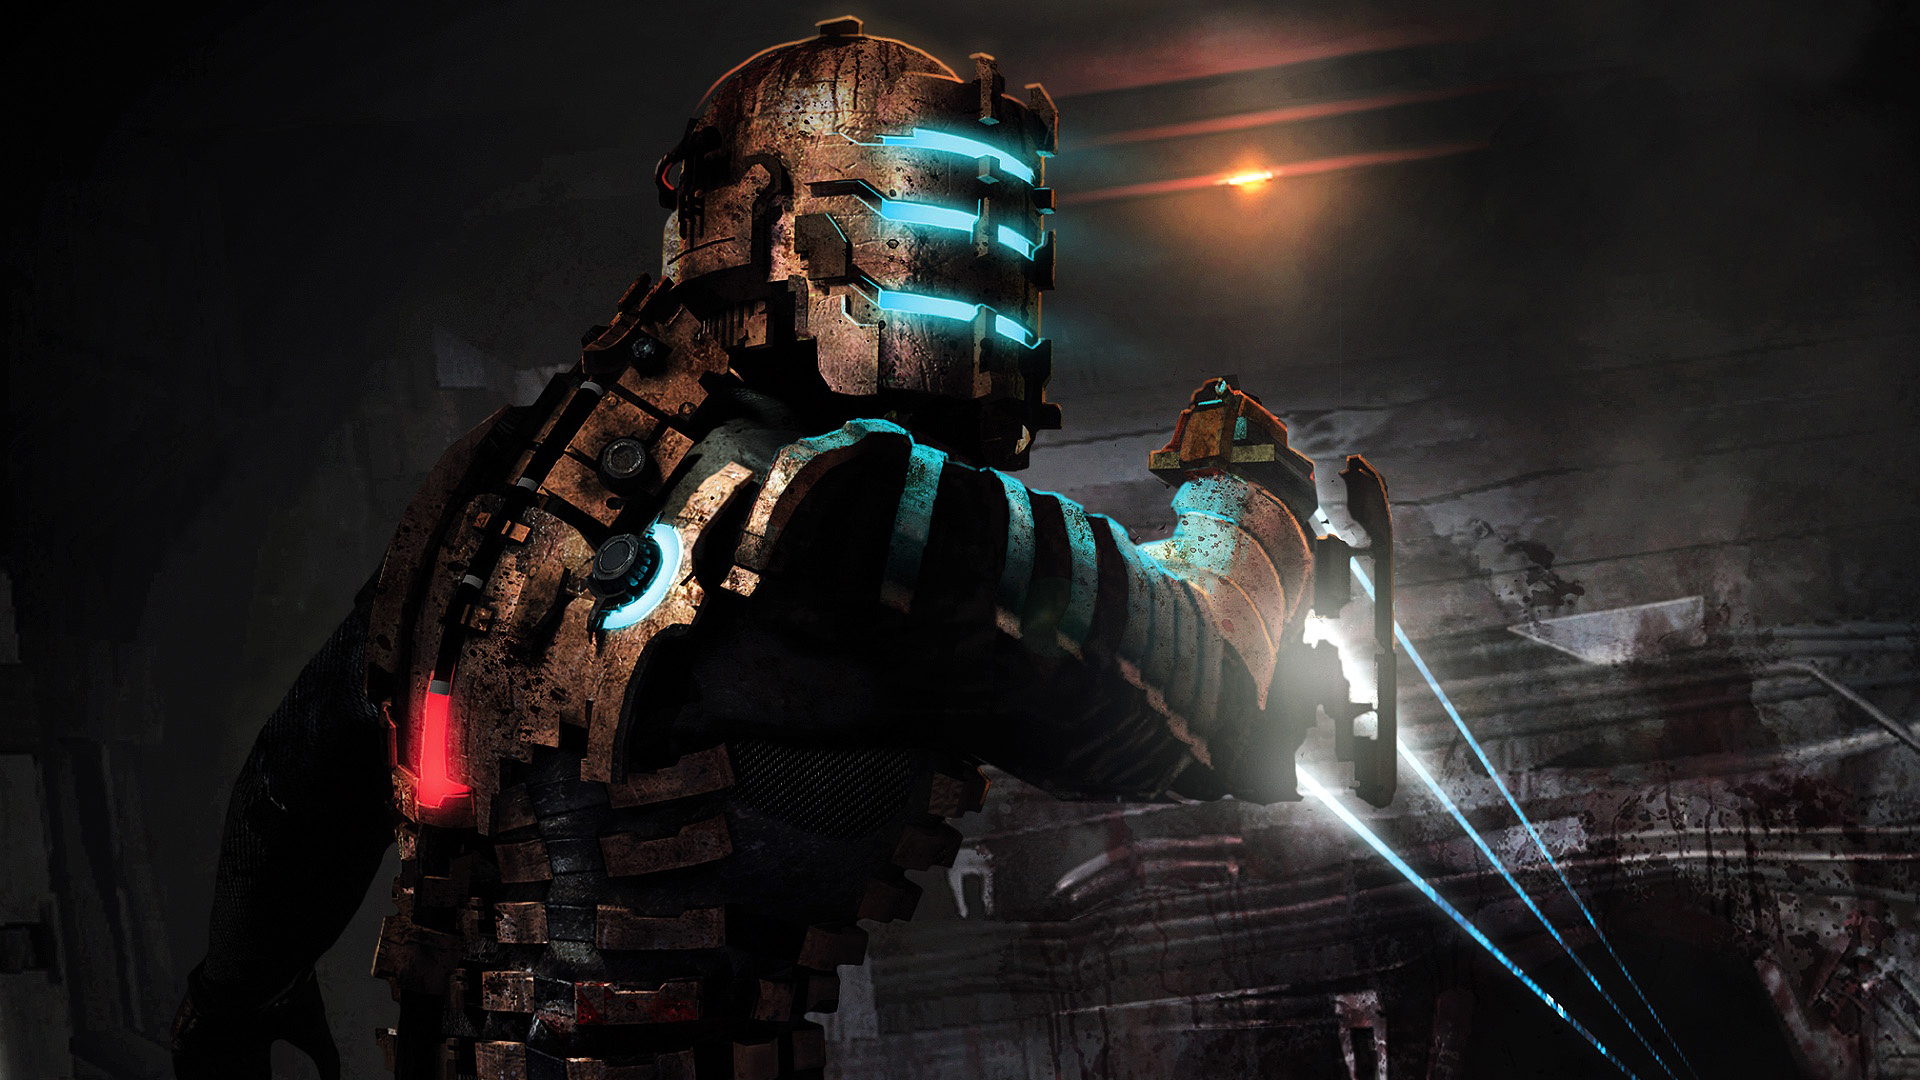 dead space 3 wallpaper a hd desktop wallpapers 4k hd